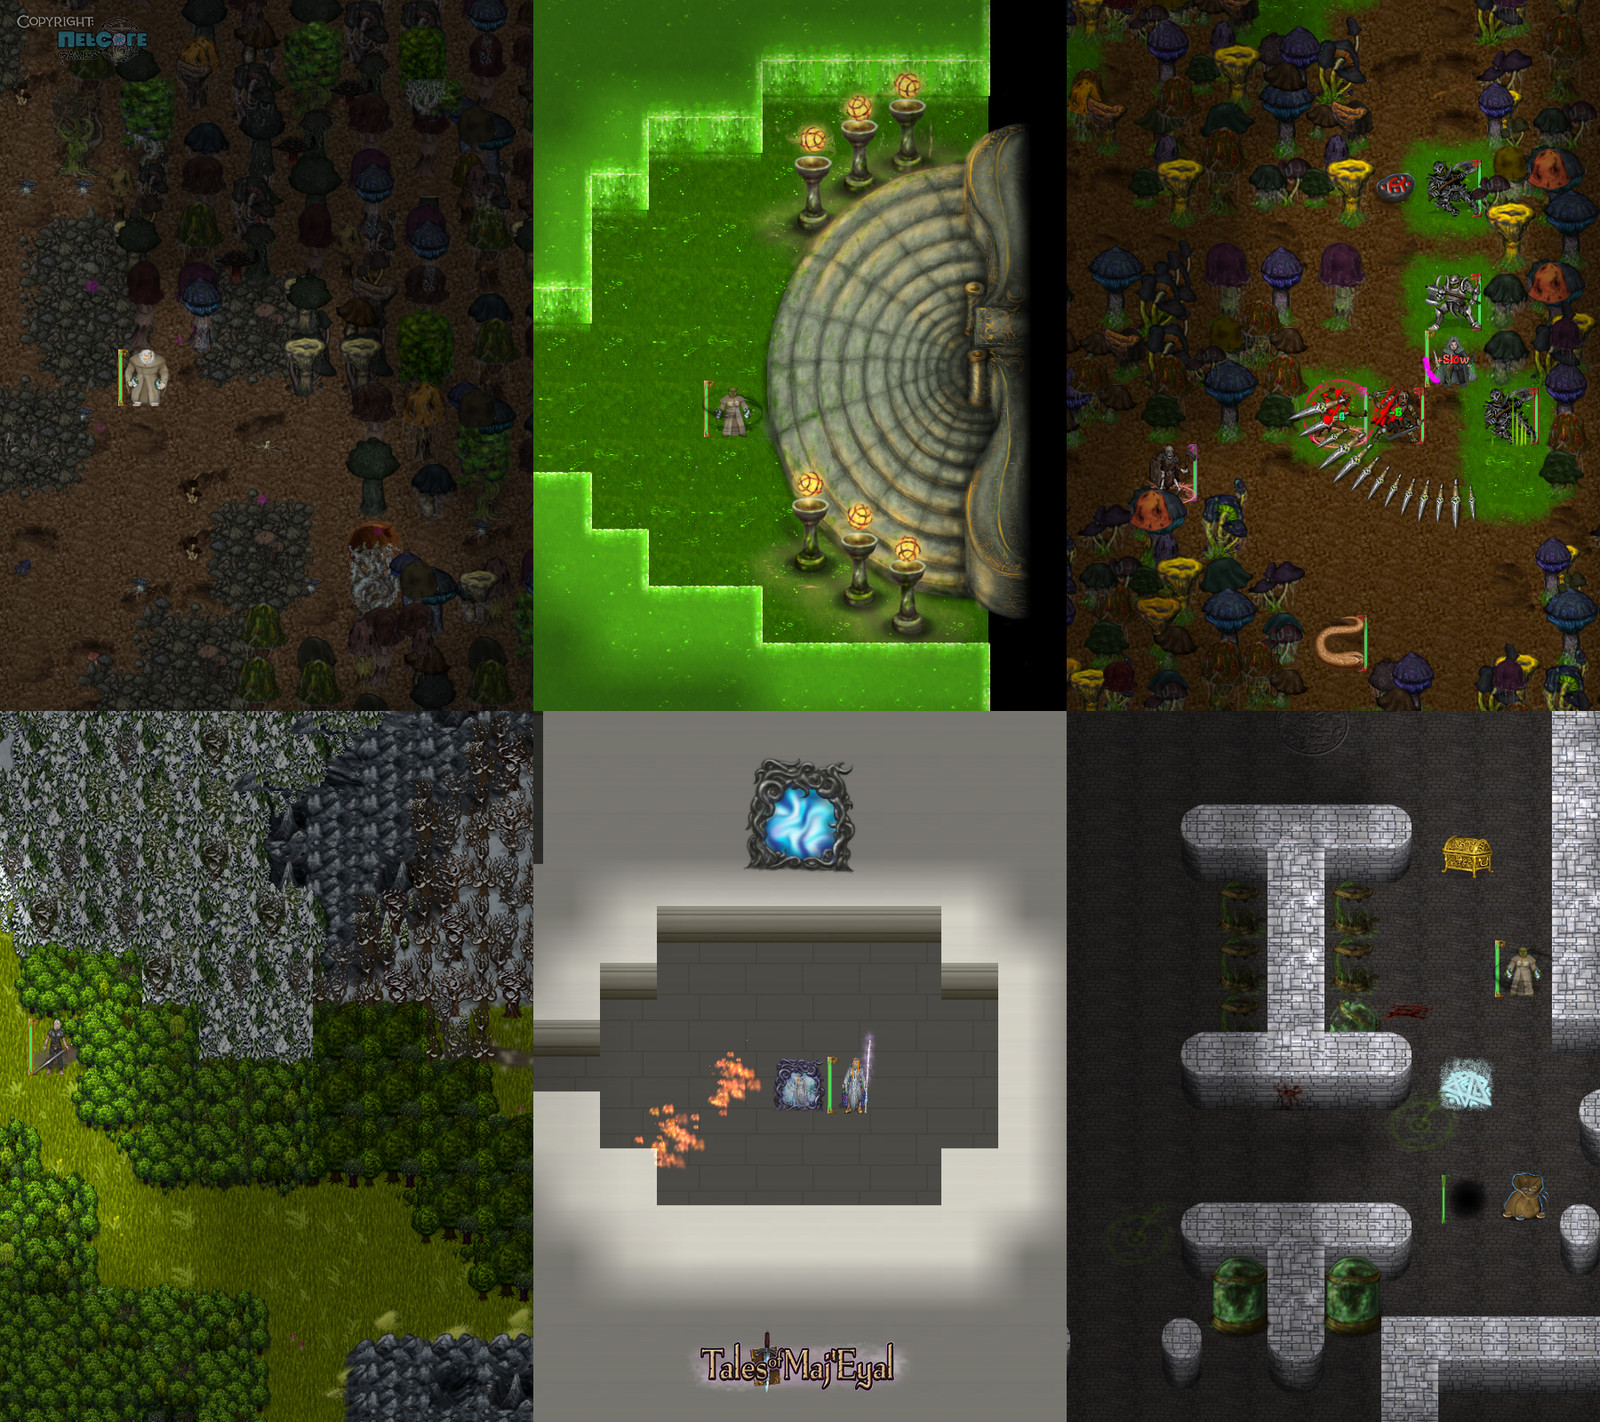 """Gloomy mushrooms tilset, dramatic stairs, slimy colourful mushrooms tilset, more worldmap forests, a funky mirror, more vats. Additional game artwork by Raymond """"Shockbolt"""" Gaustadnes"""